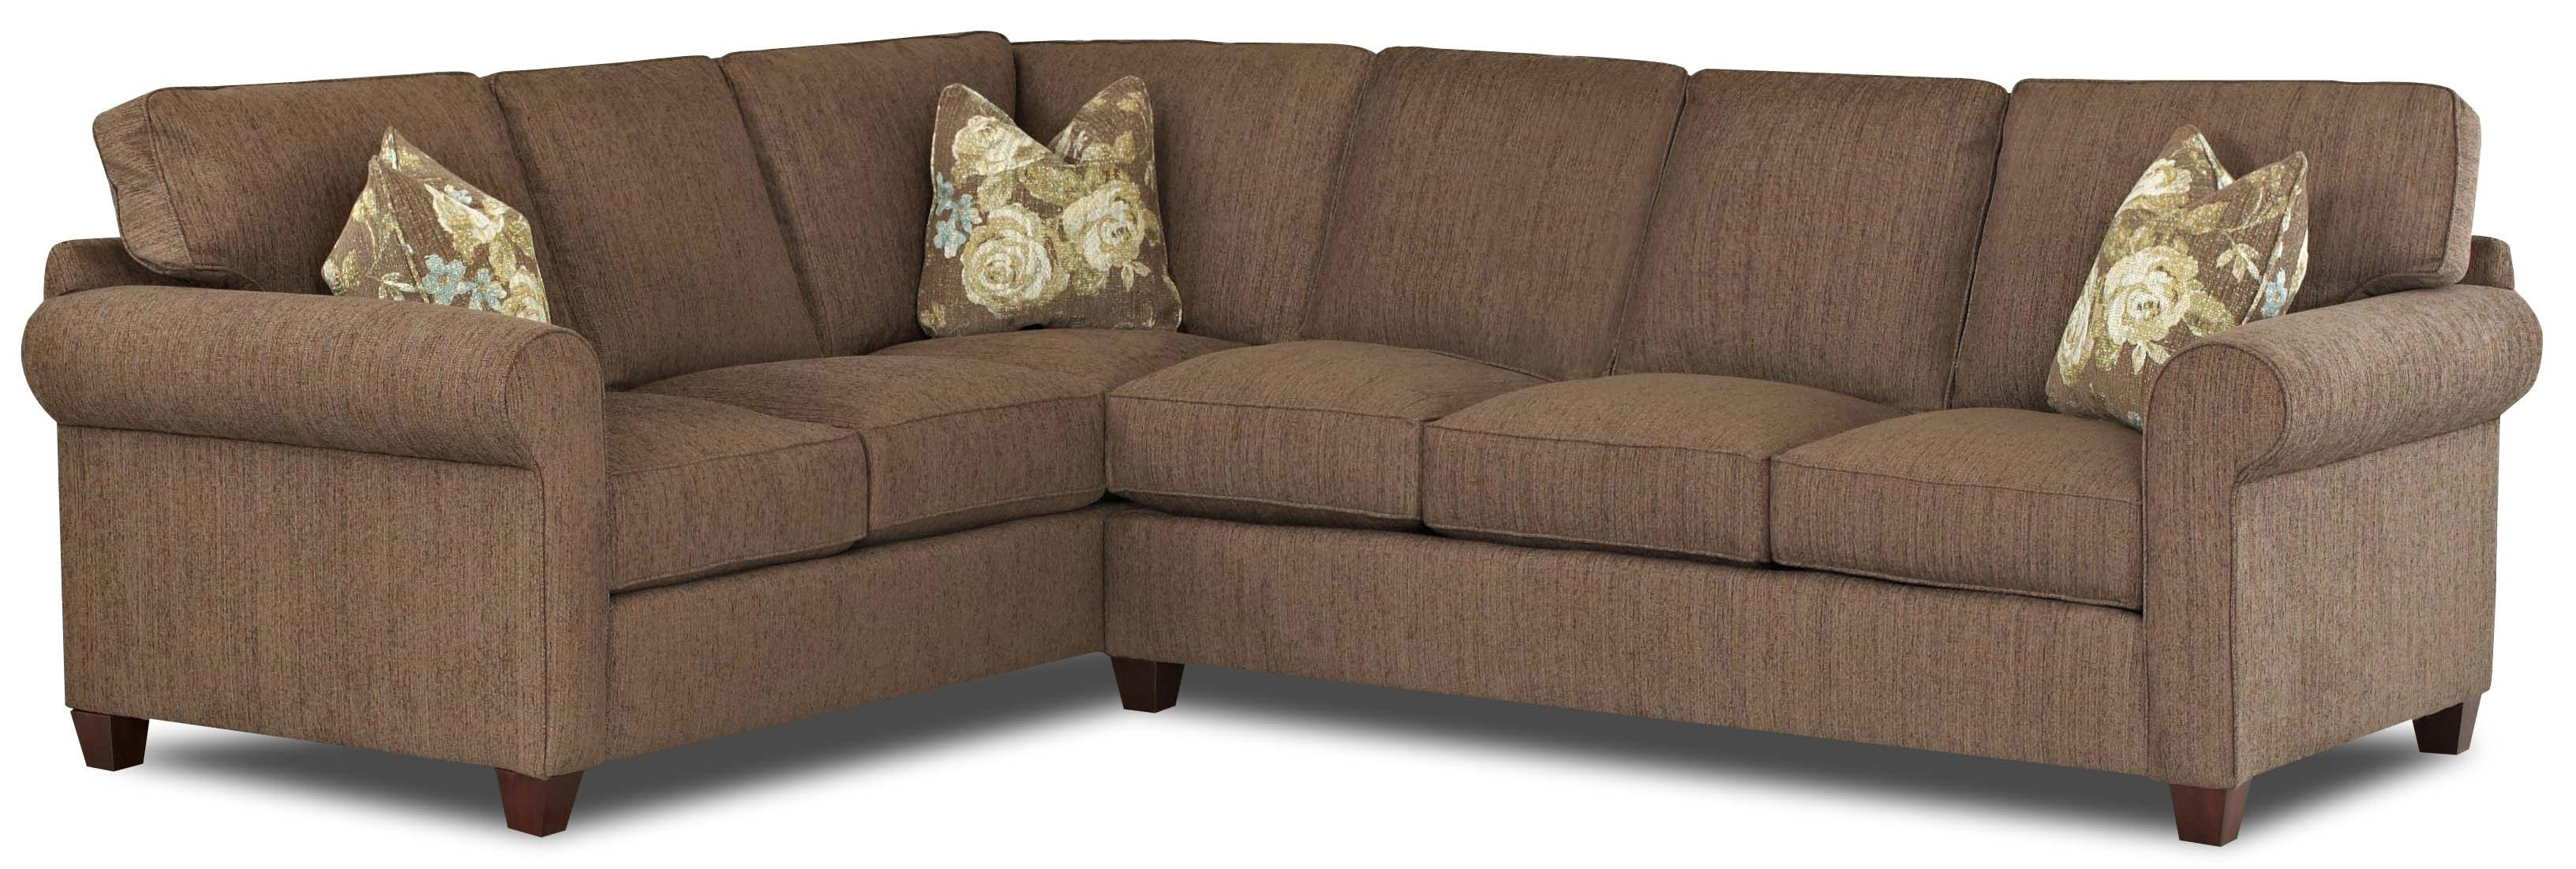 2 piece sectional sofa with welt